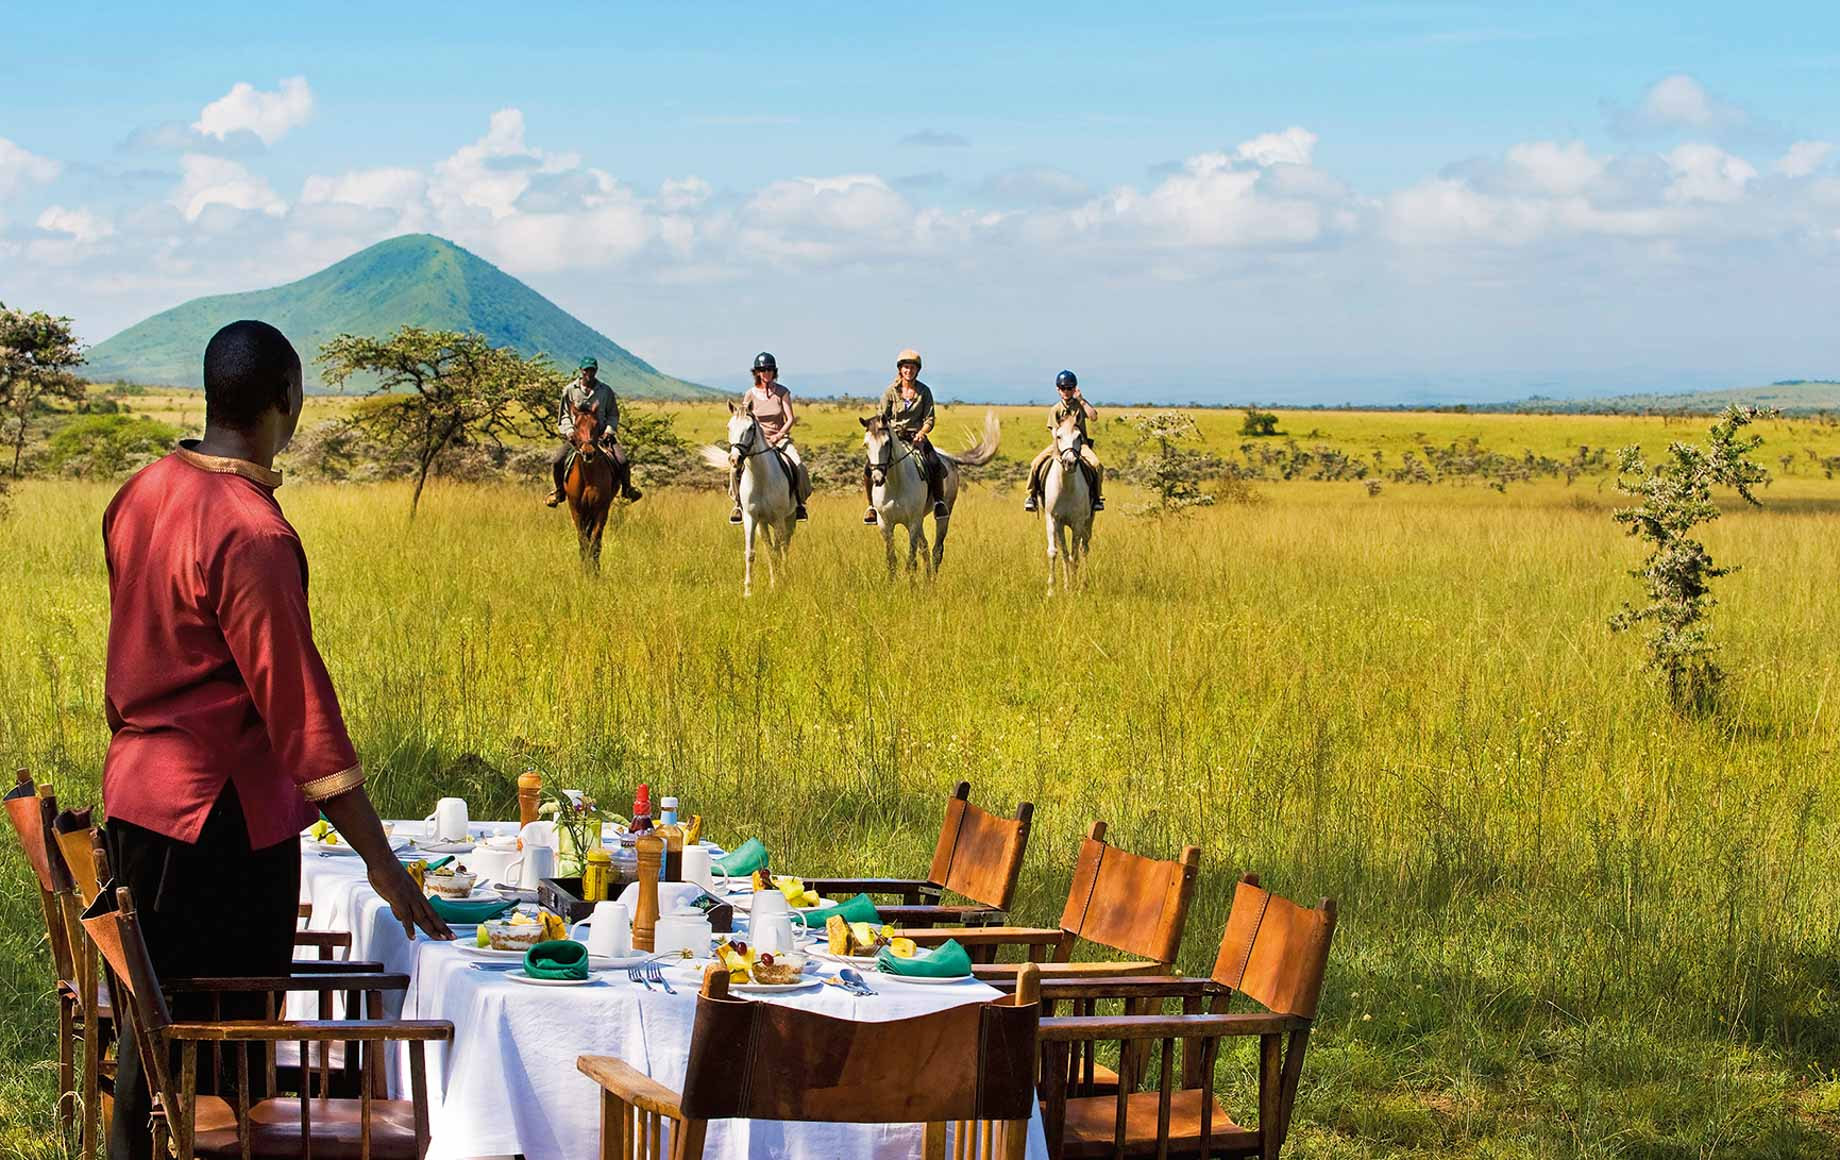 Horseback riding to picnic lunch at Chyulu Hills